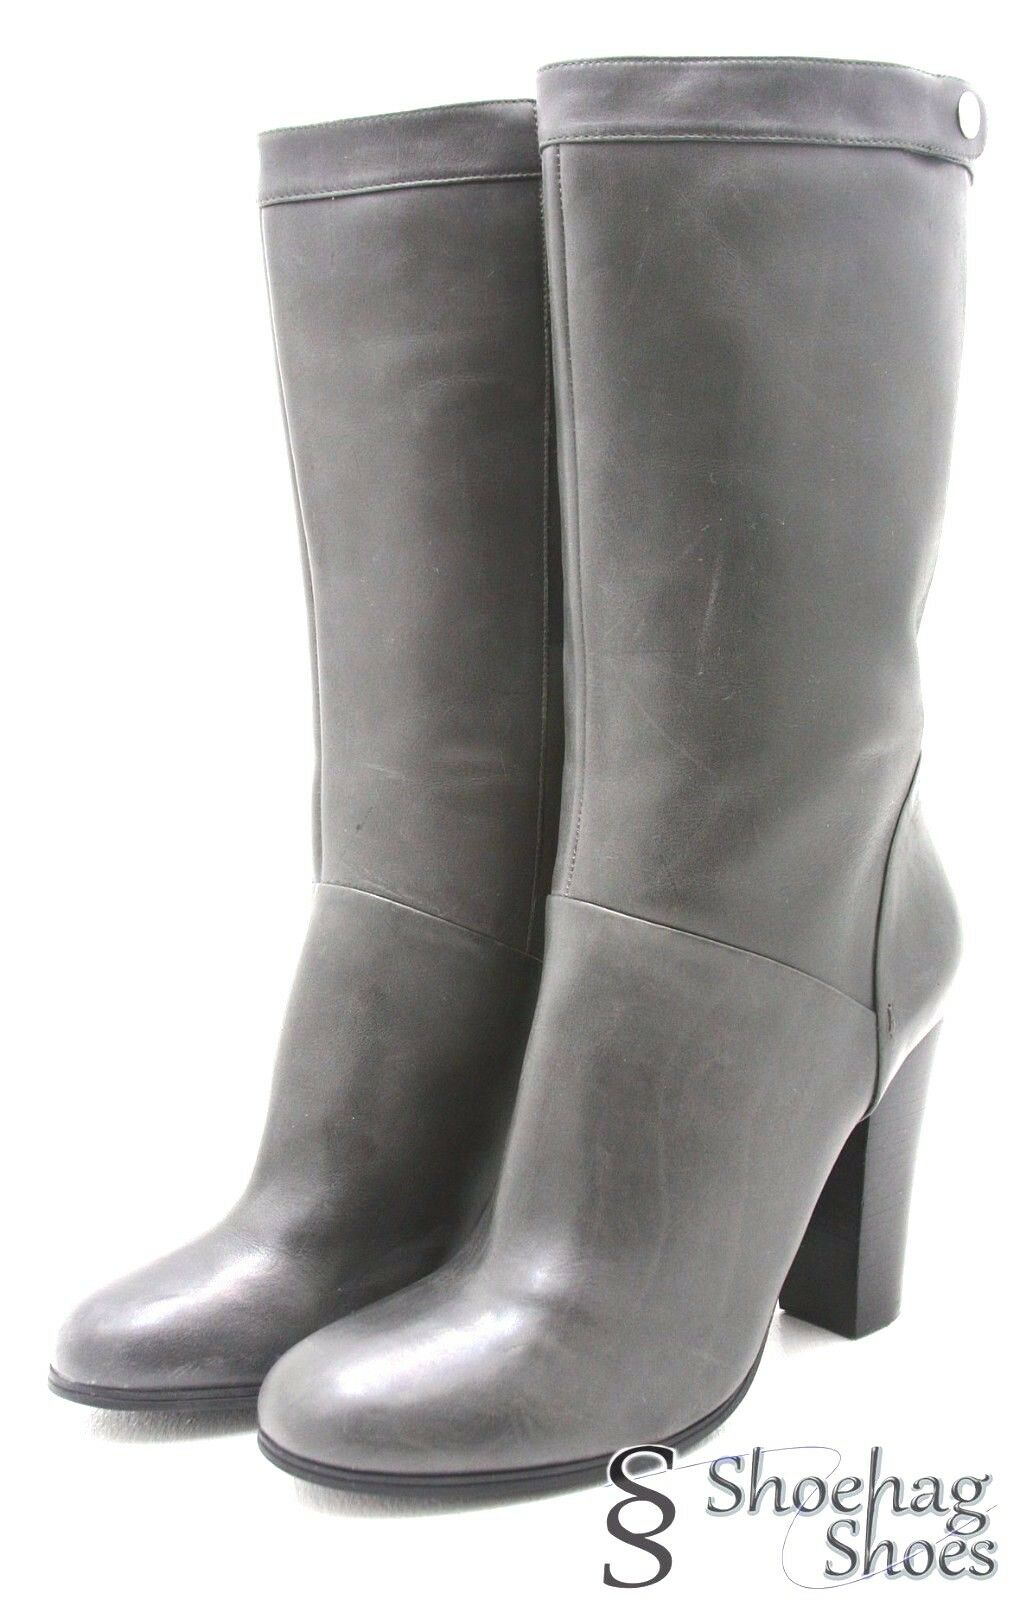 Nine 9 West Womens Knee Boots 9.5 M Armit Genuine Gray Leather Heels 9 EUC